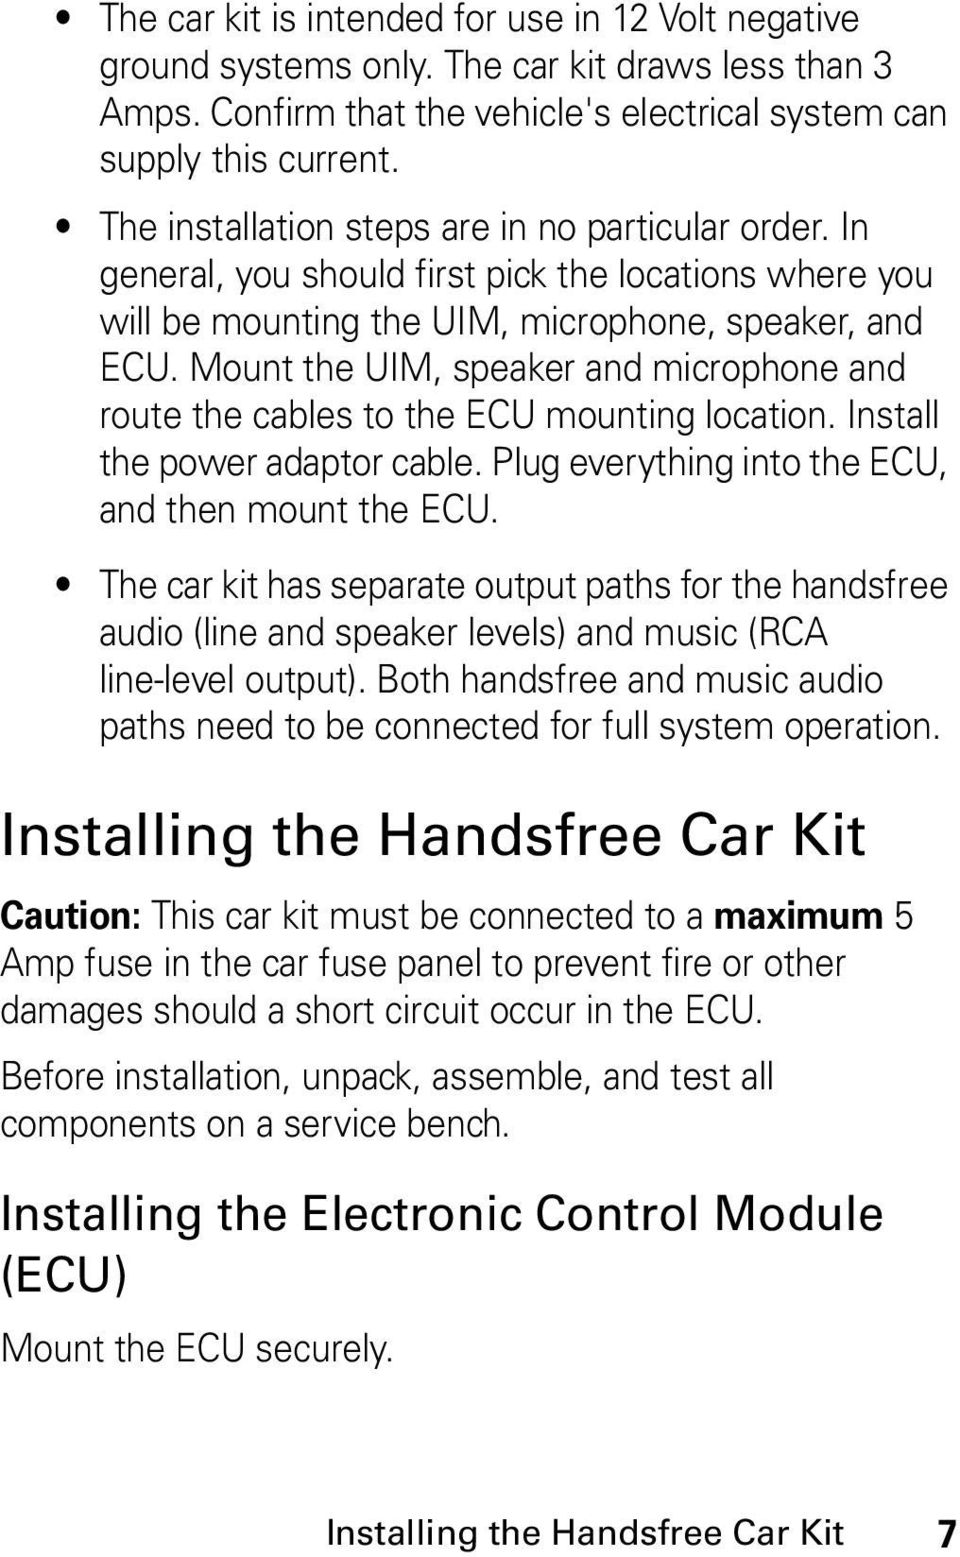 Mount the UIM, speaker and microphone and route the cables to the ECU mounting location. Install the power adaptor cable. Plug everything into the ECU, and then mount the ECU.